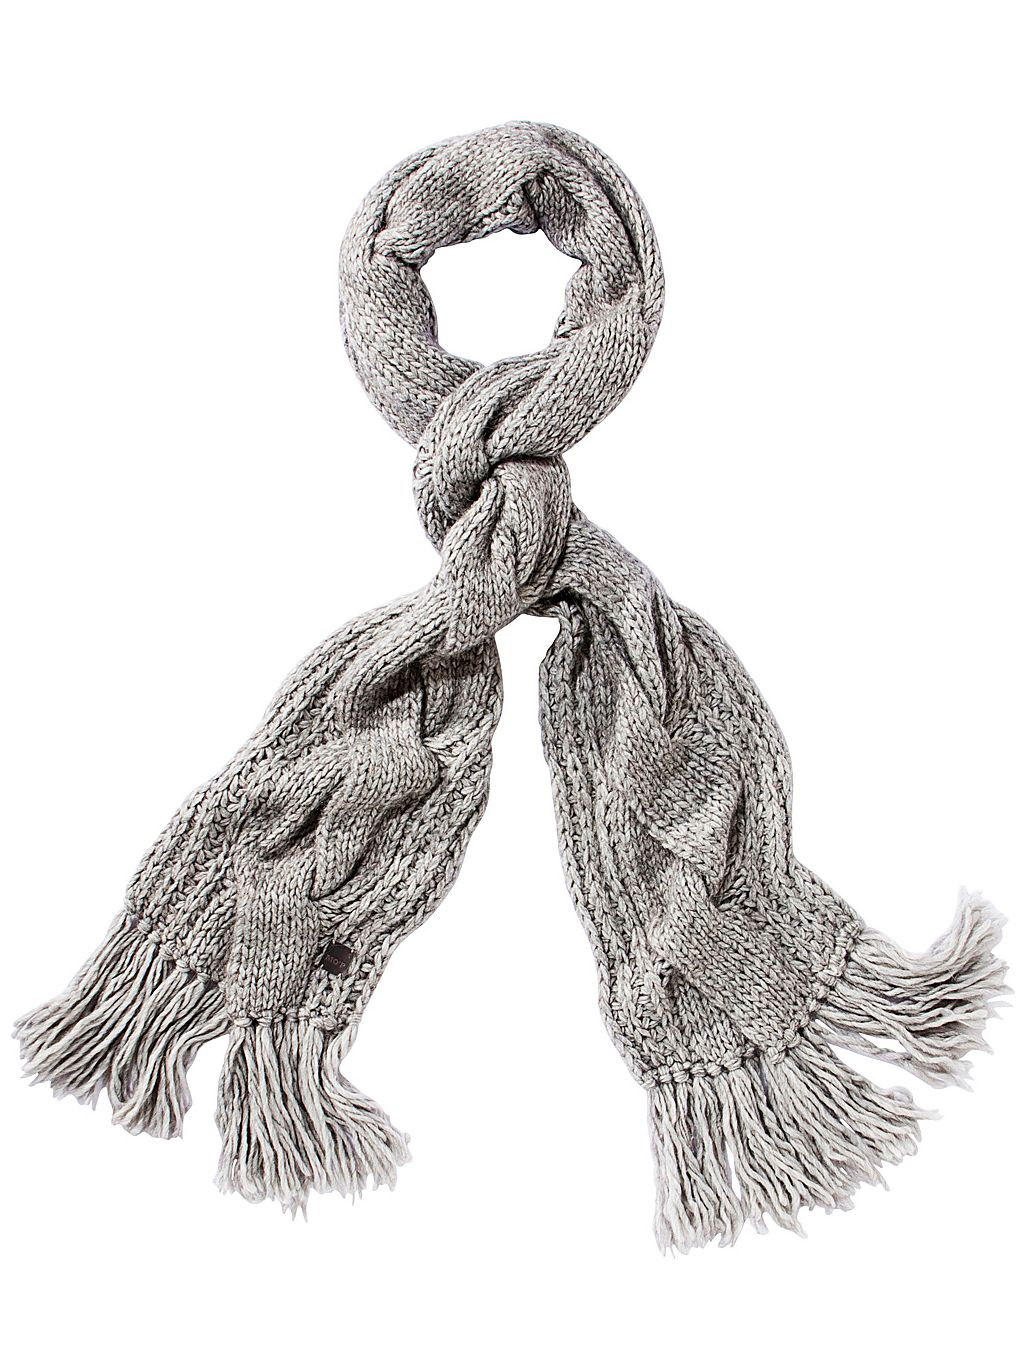 Wide-braided scarves